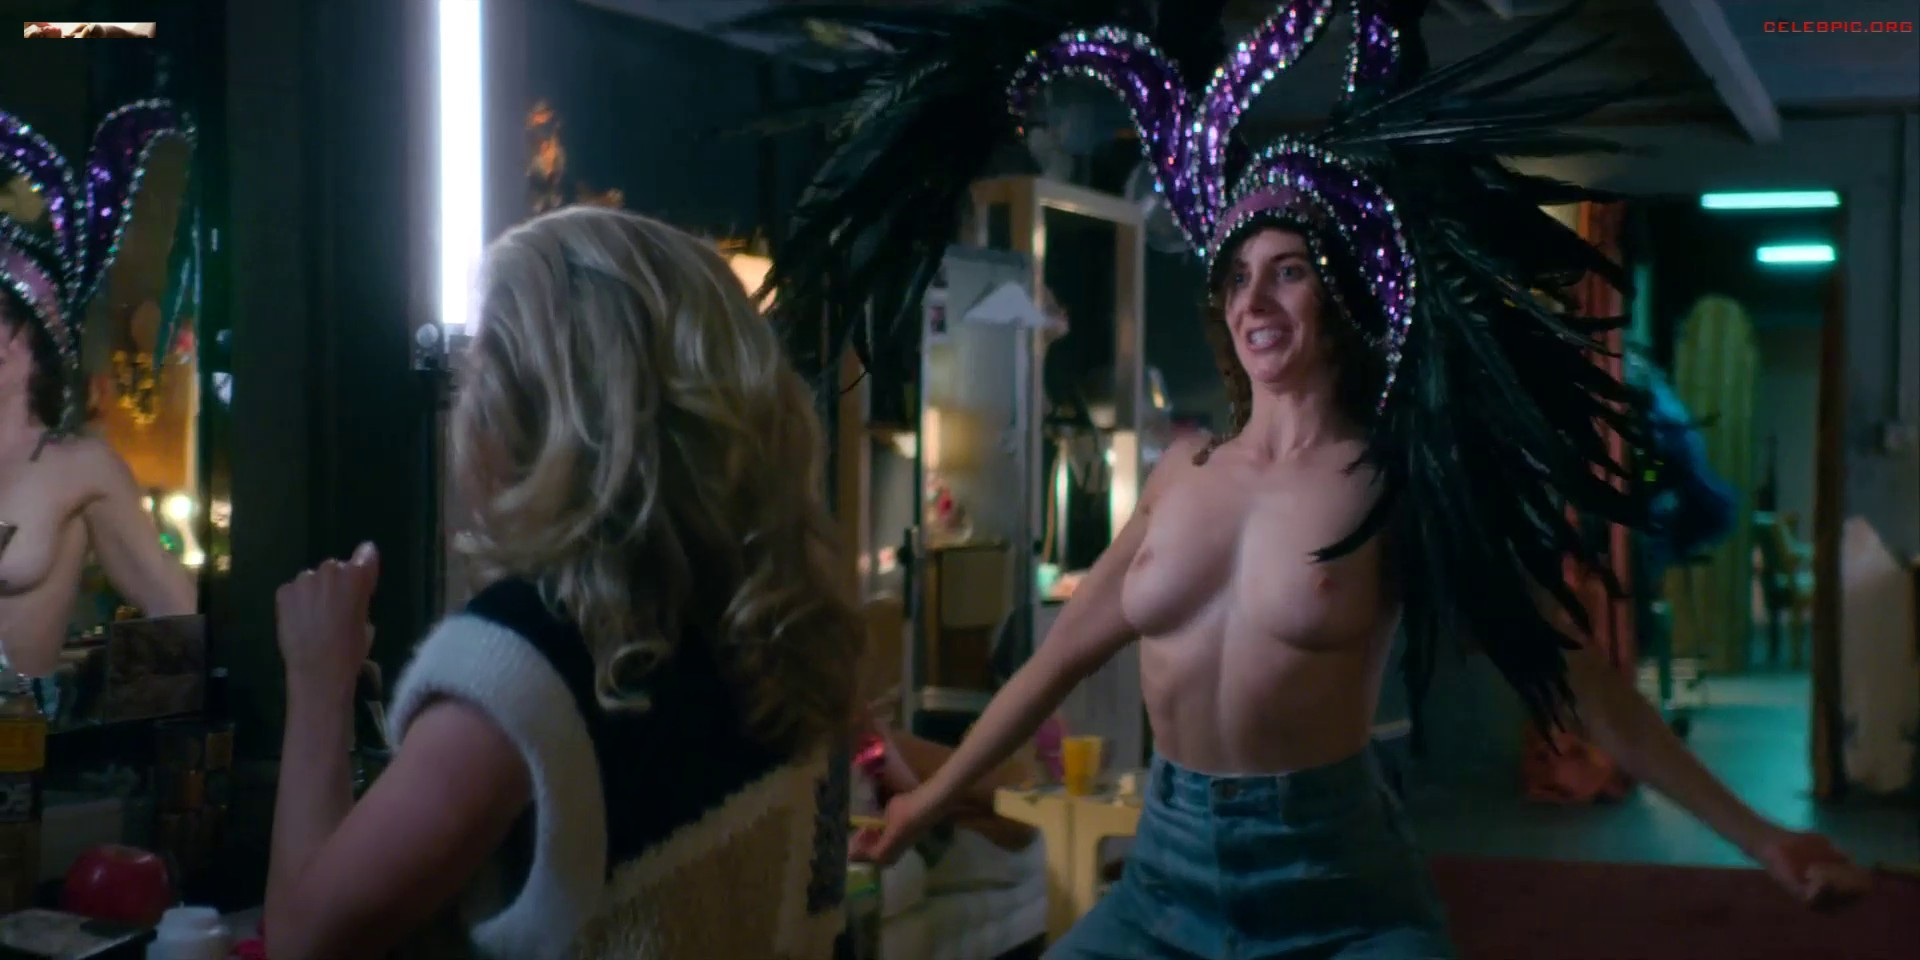 Alison Brie Glow Boobs alison brie nude, naked - pics and videos - imperiodefamosas